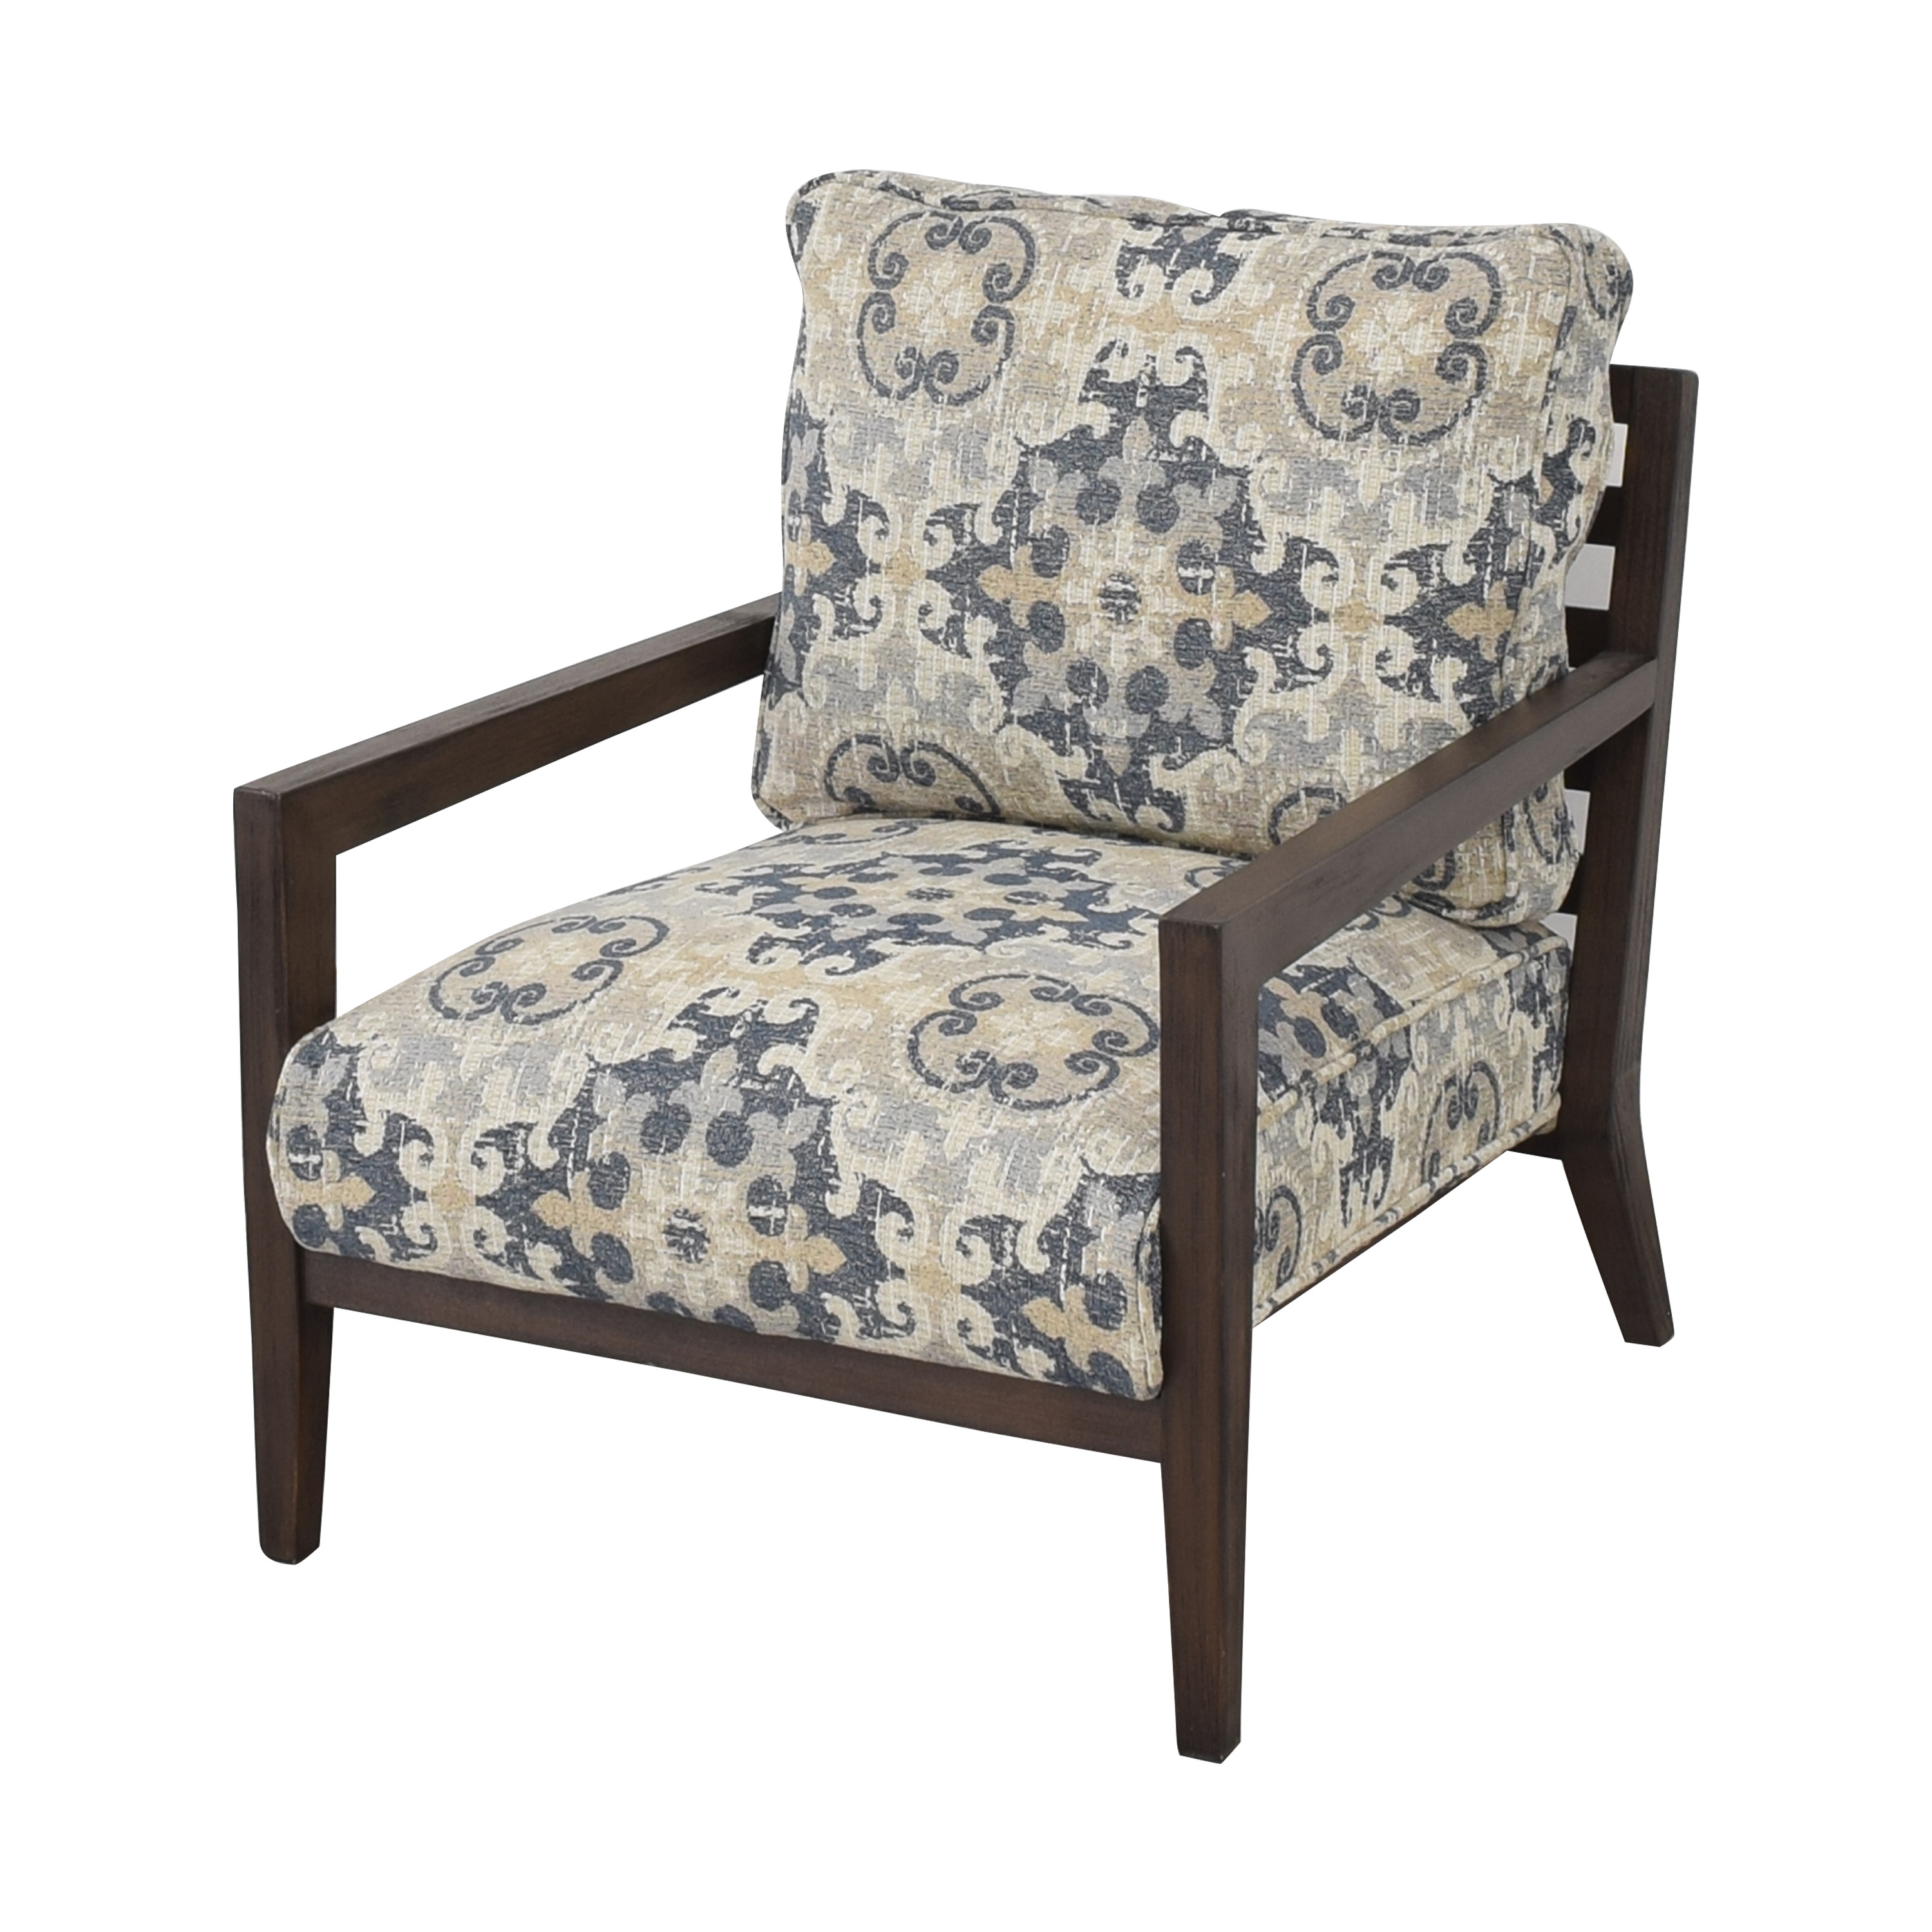 shop Raymour & Flanigan Raymour & Flanigan Cushioned Accent Chair online